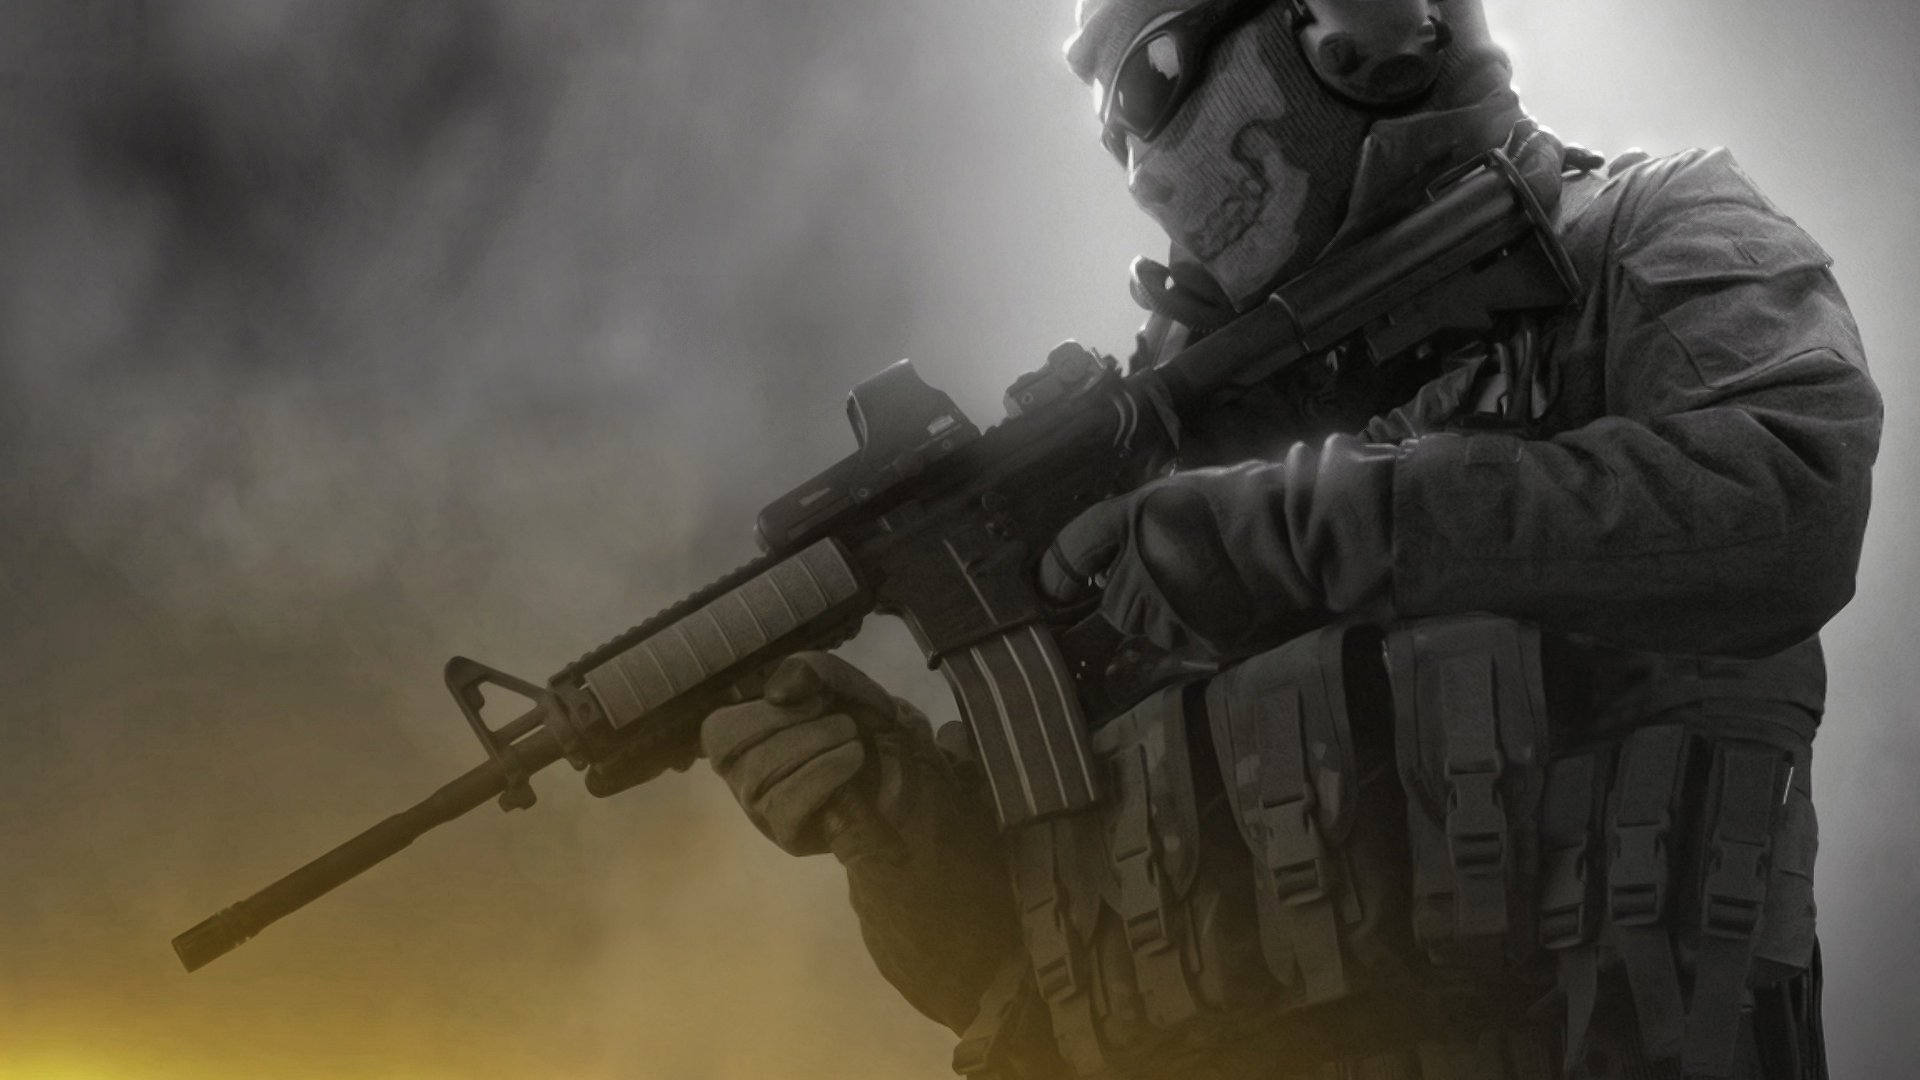 Military - Soldier  Wallpaper